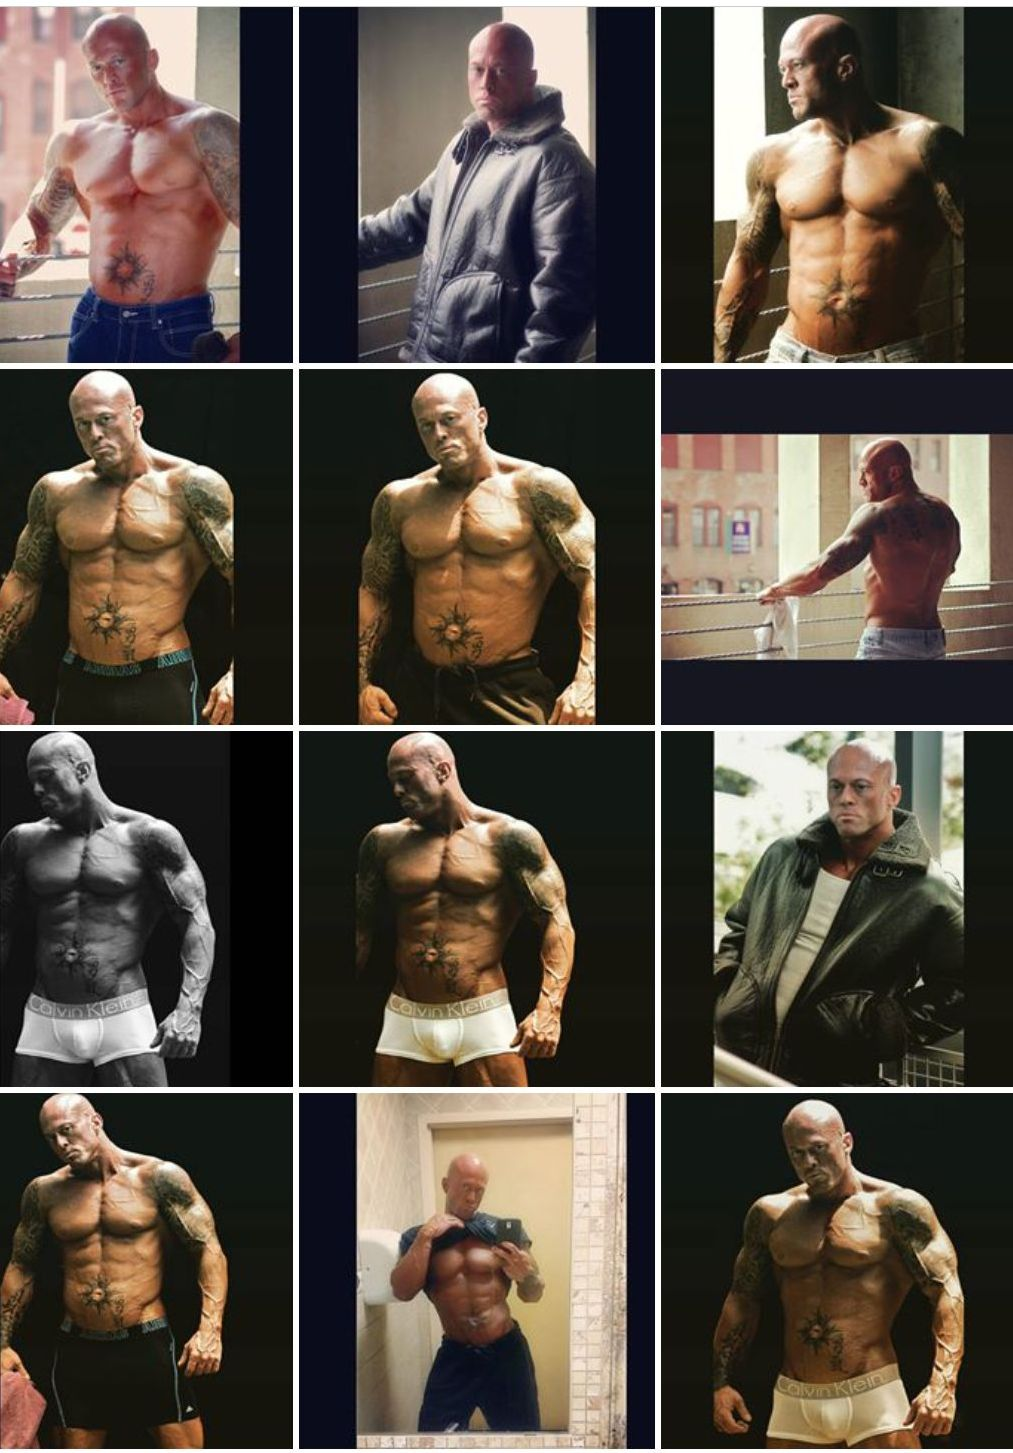 Male Physique Model & Actor John Joseph Quinlan June 2015 Photo Shoot Collage by Ms. X #JohnQuinlan